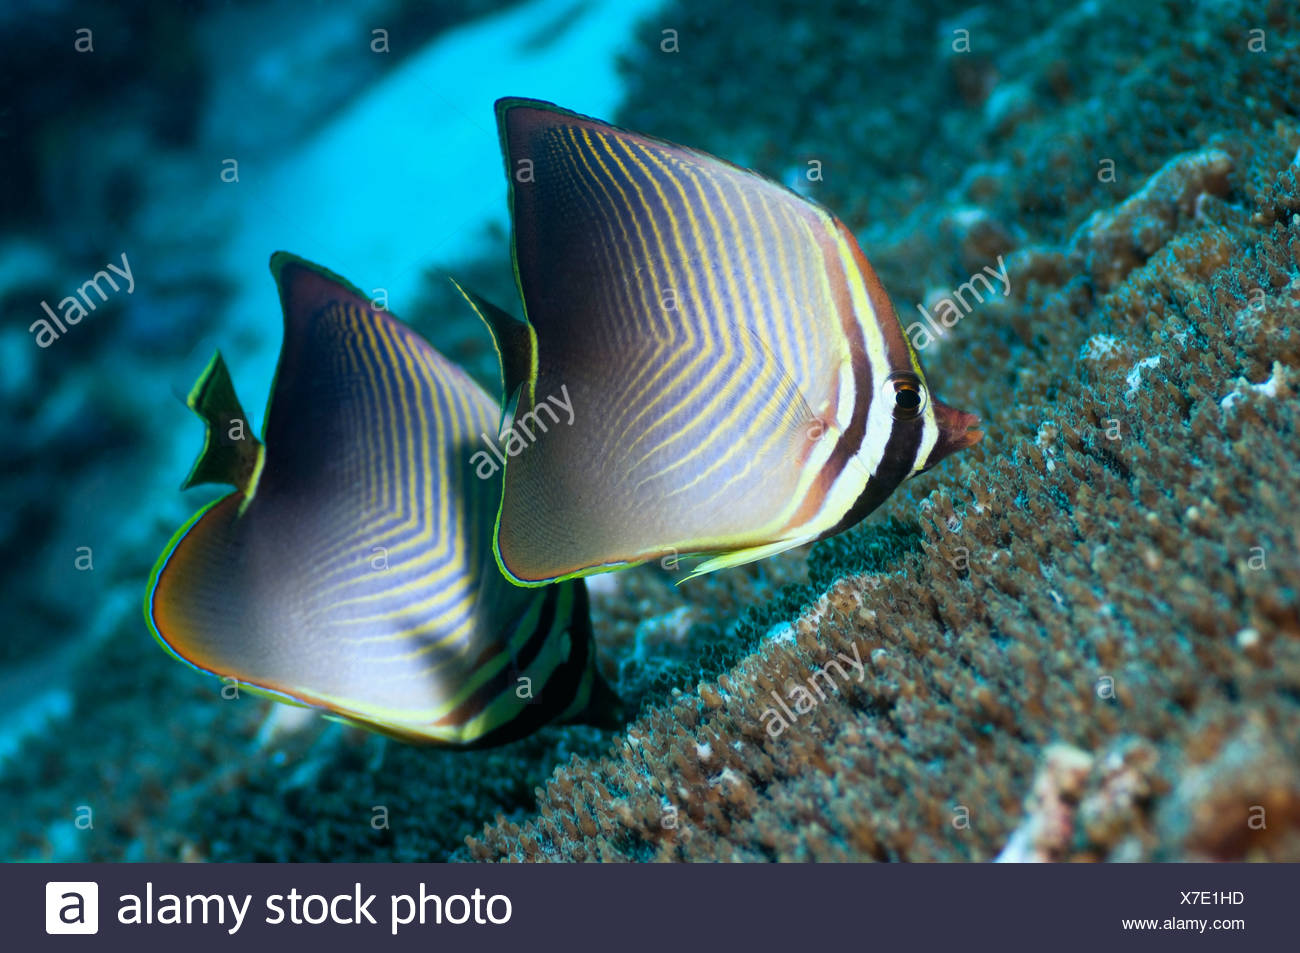 Eastern triangle butterflyfish pair feeding on coral polyps.  Raja Ampat, West Papua, Indonesia. - Stock Image